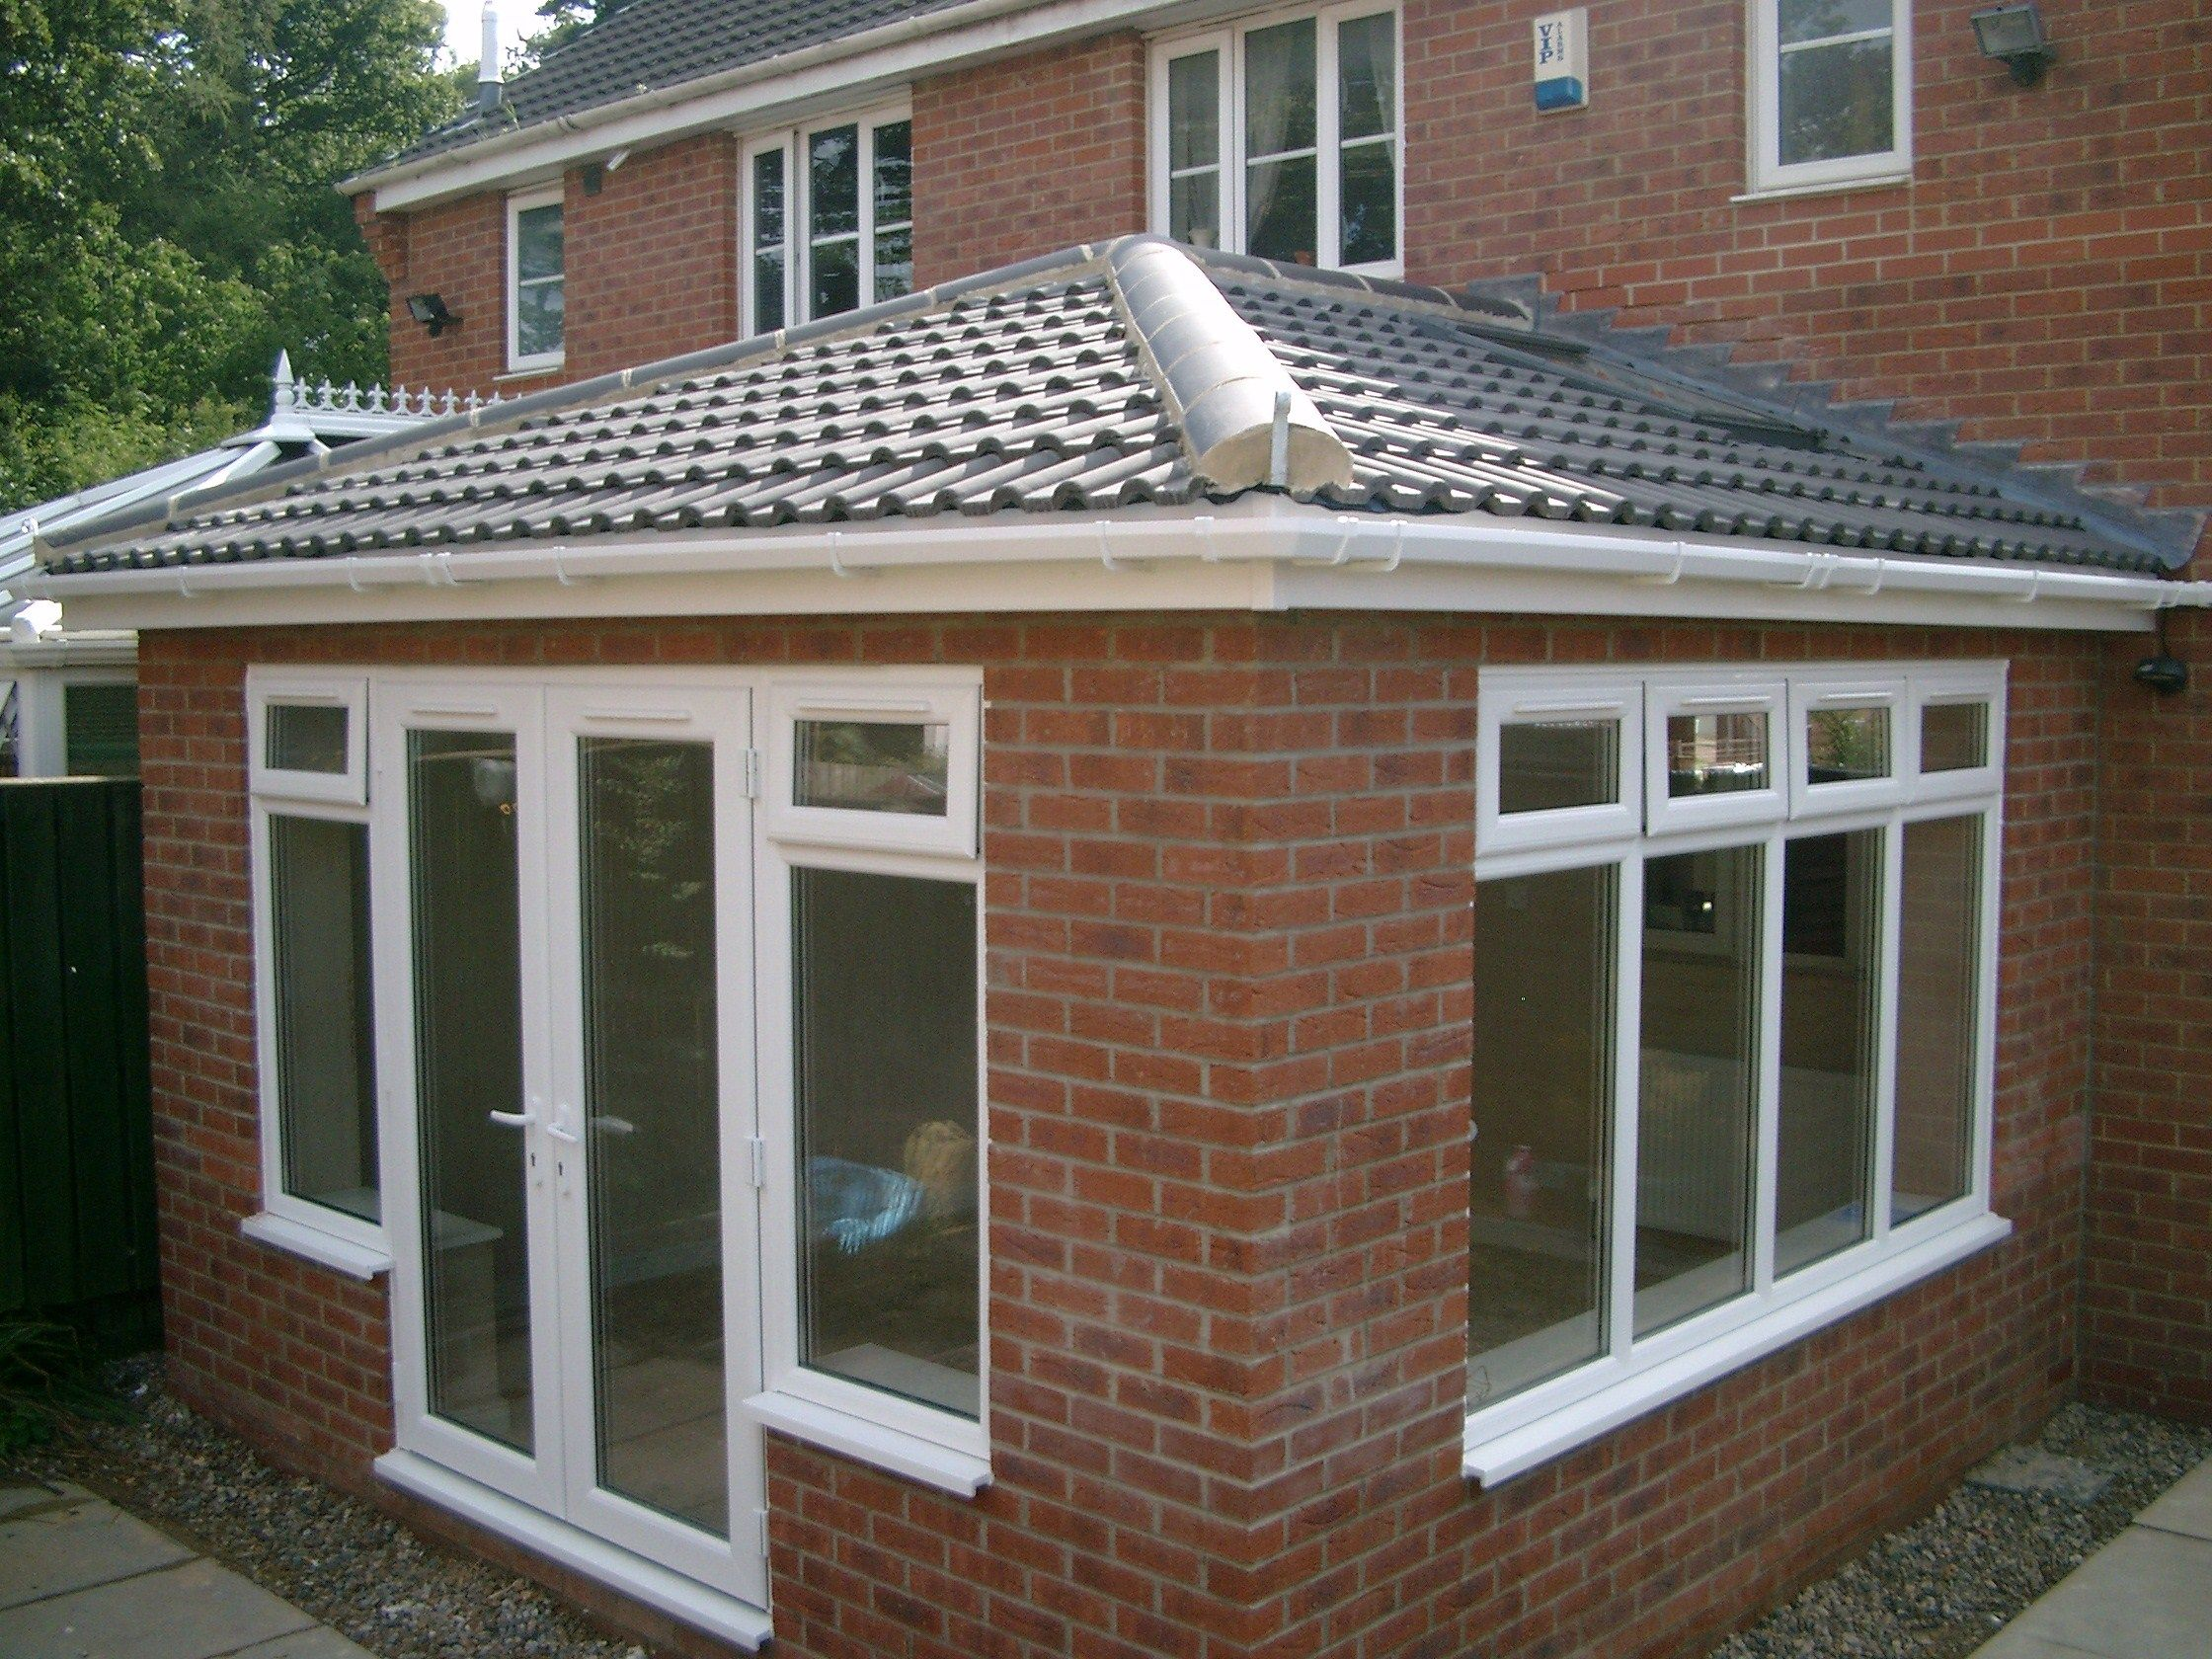 Photos Of Our Work Contact Us For A Free No Obligation Quote Sales Nationalwindowsystems Co Uk Or Garden Room Extensions Porch Installation Room Extensions